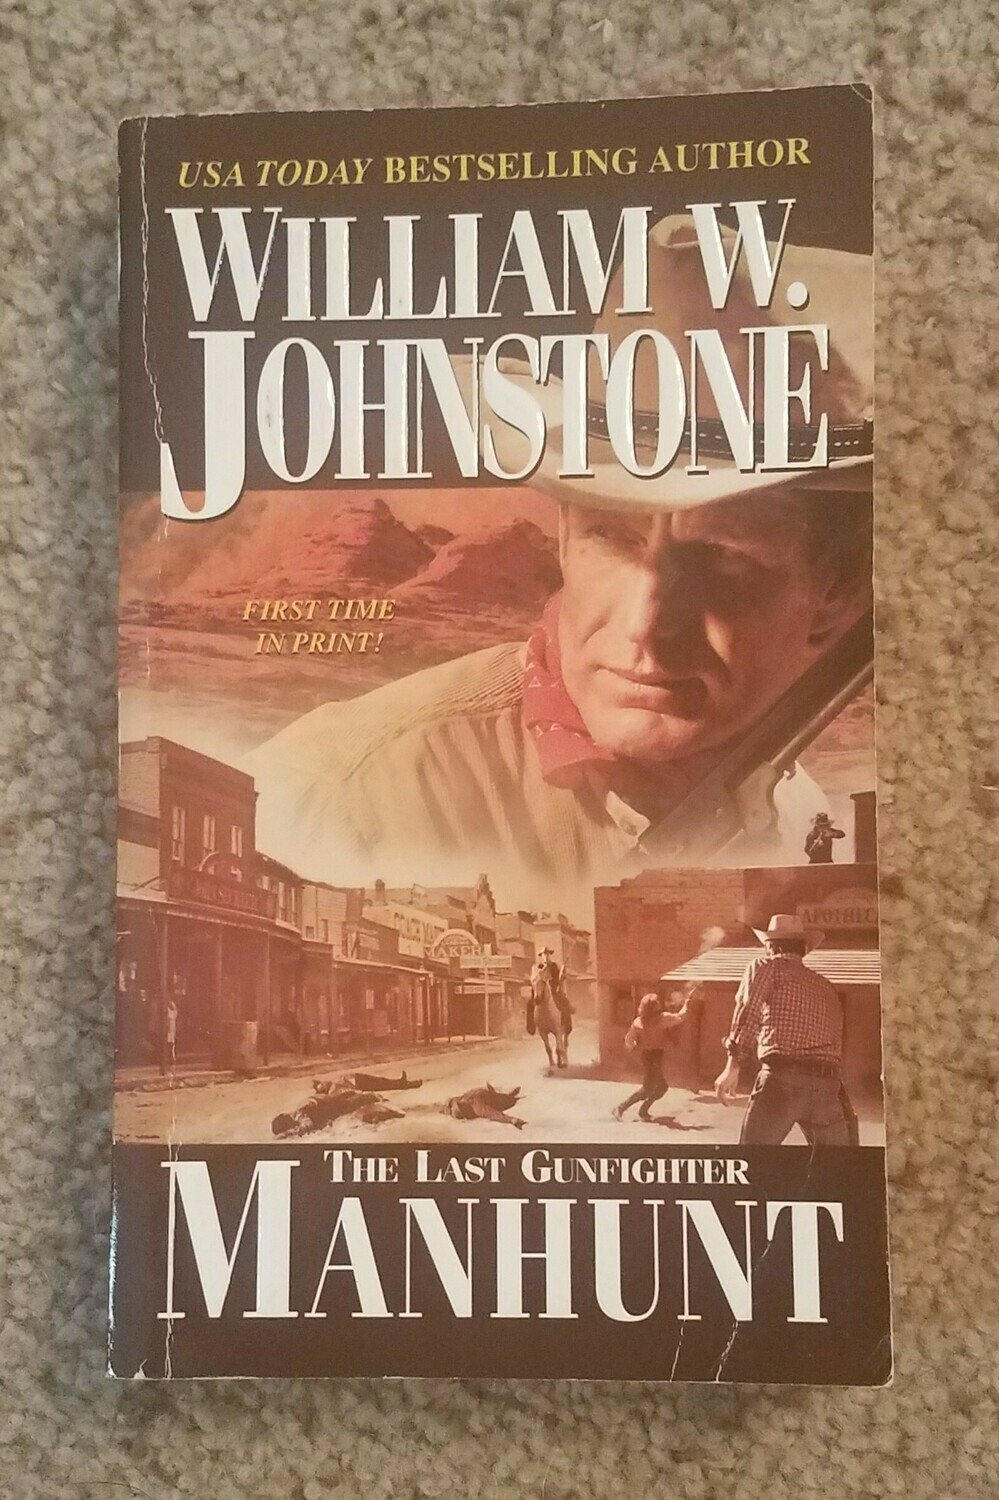 The Last Gunfighter: Manhunt by William W. Johnstone